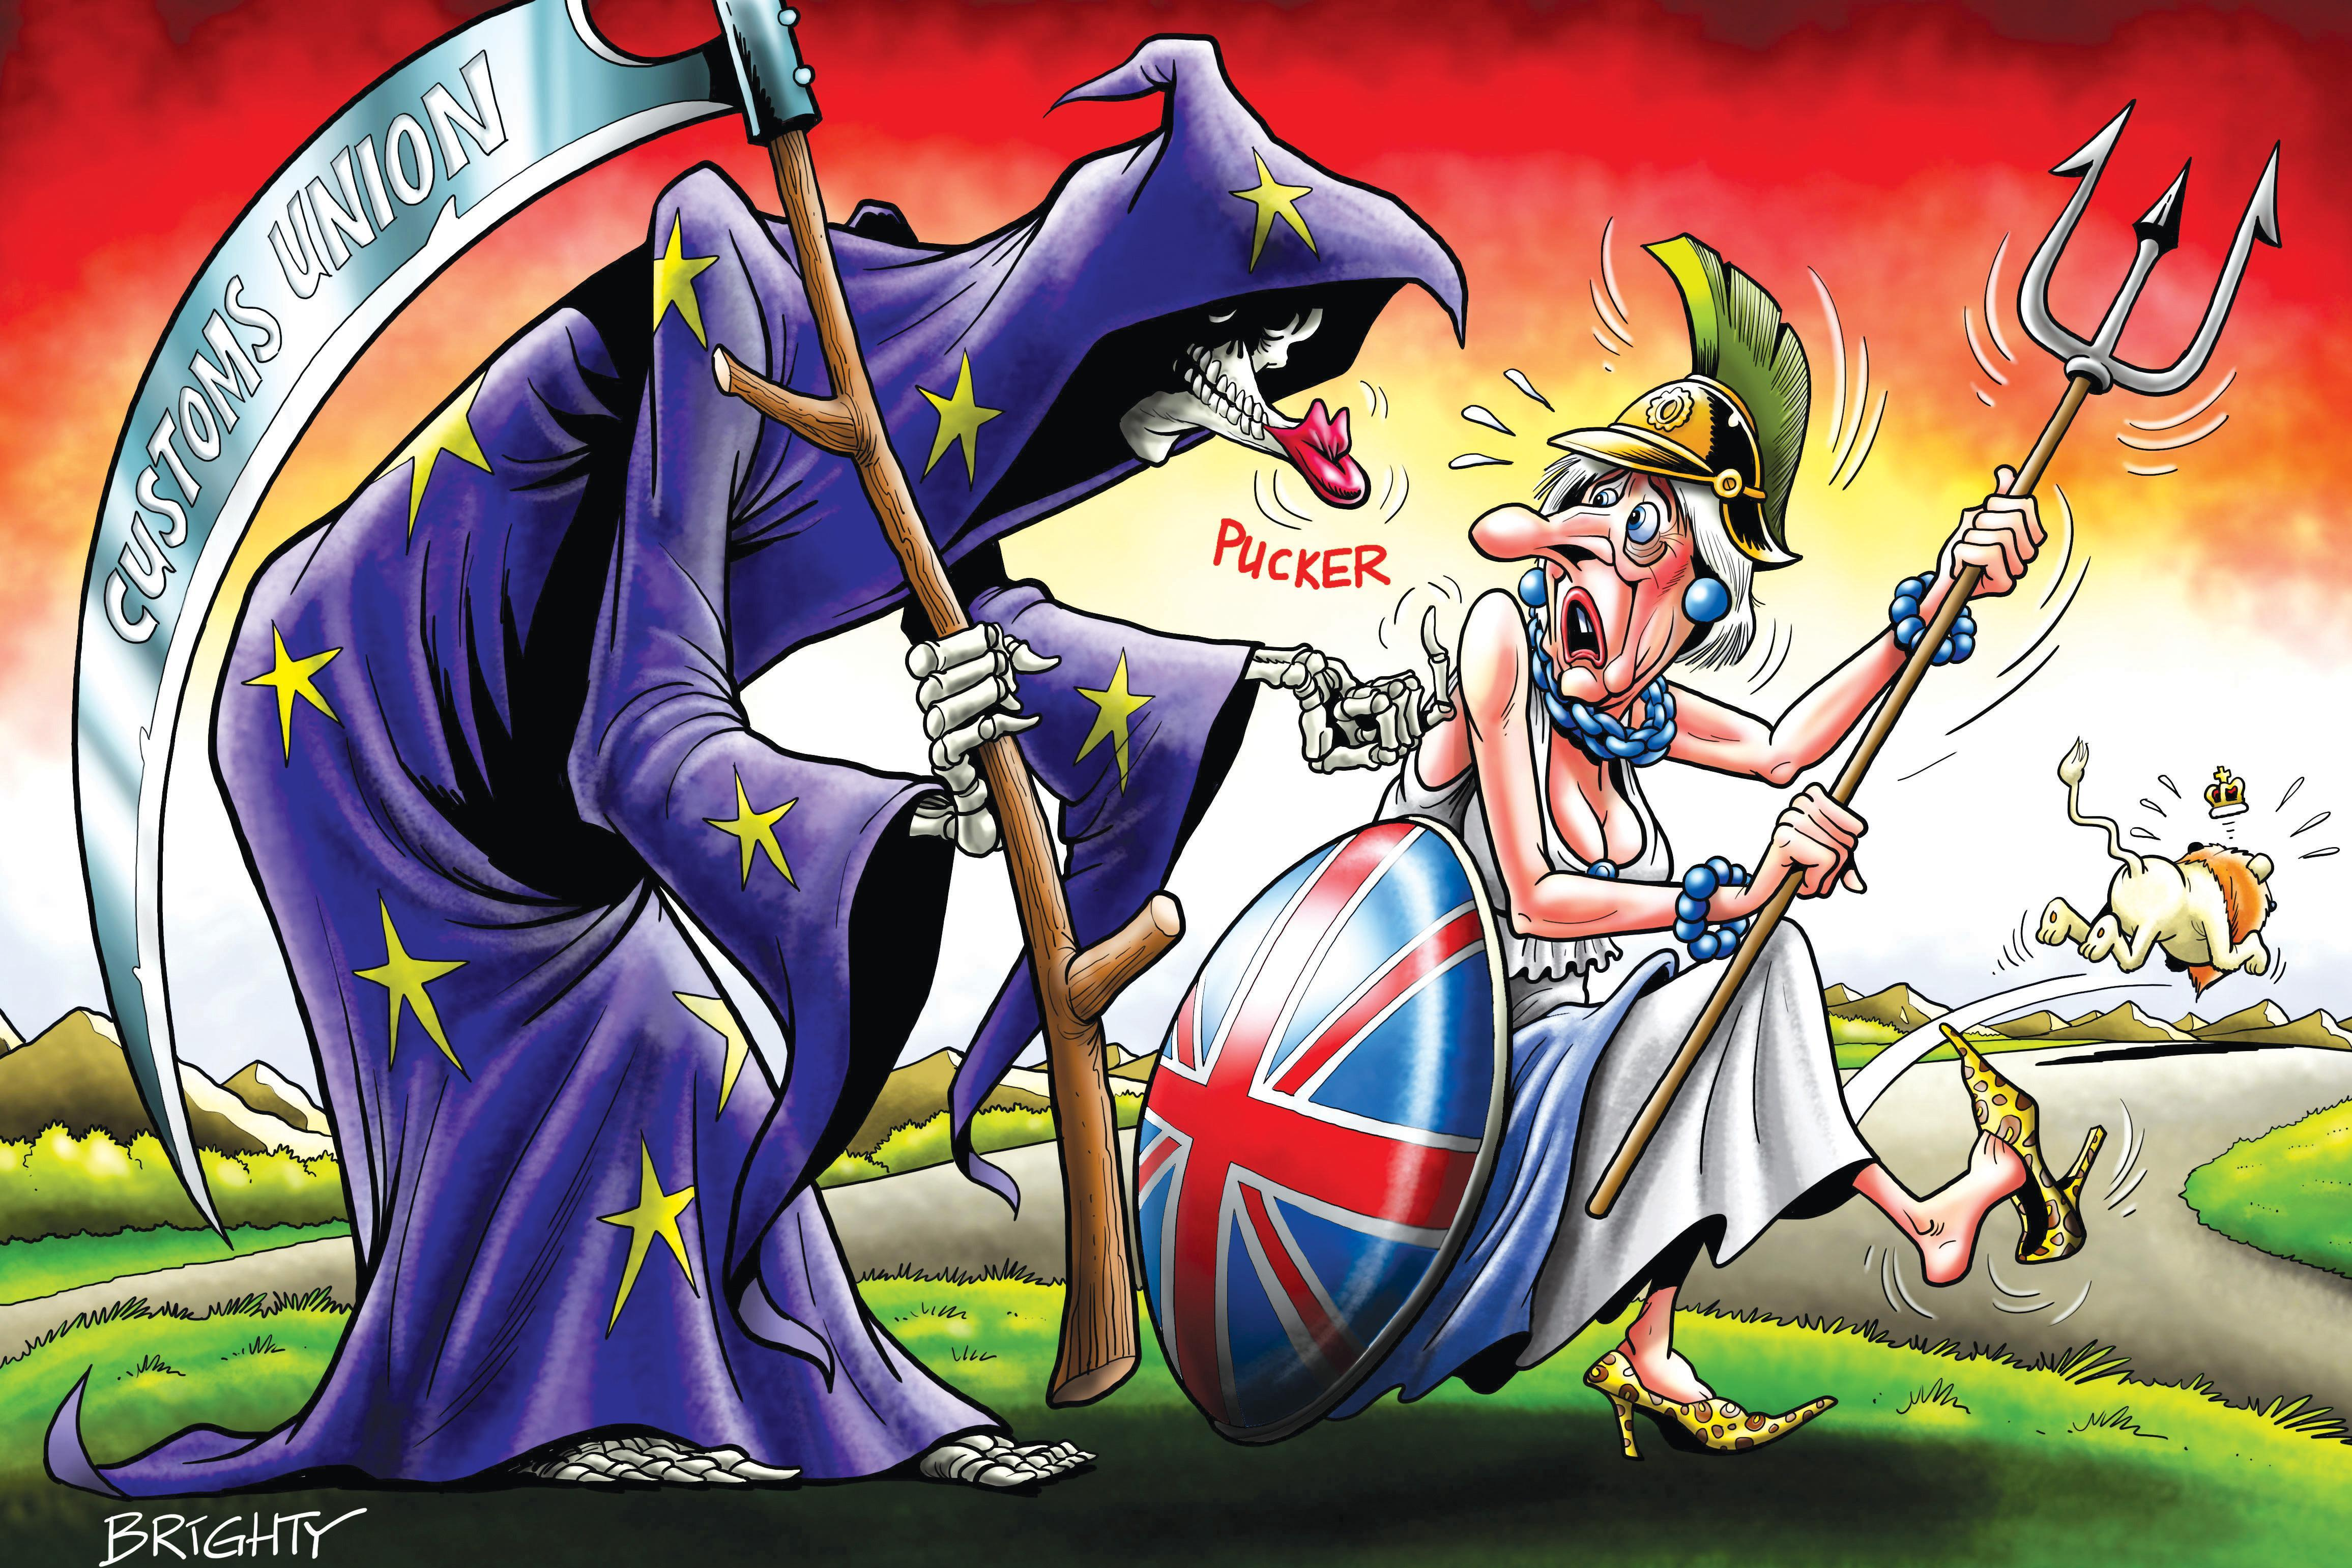 Staying in the EU's Customs Union will be kiss of death for the UK's future